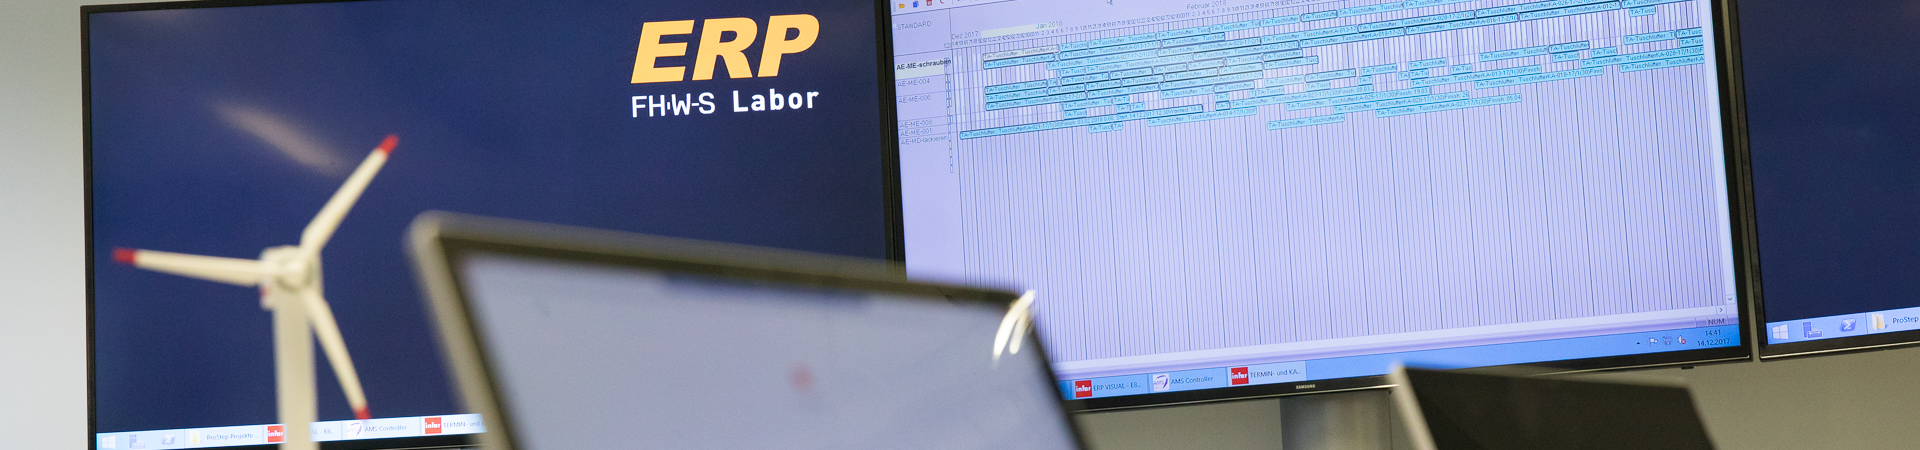 ERP Lab FHWS, FWI, Photo: